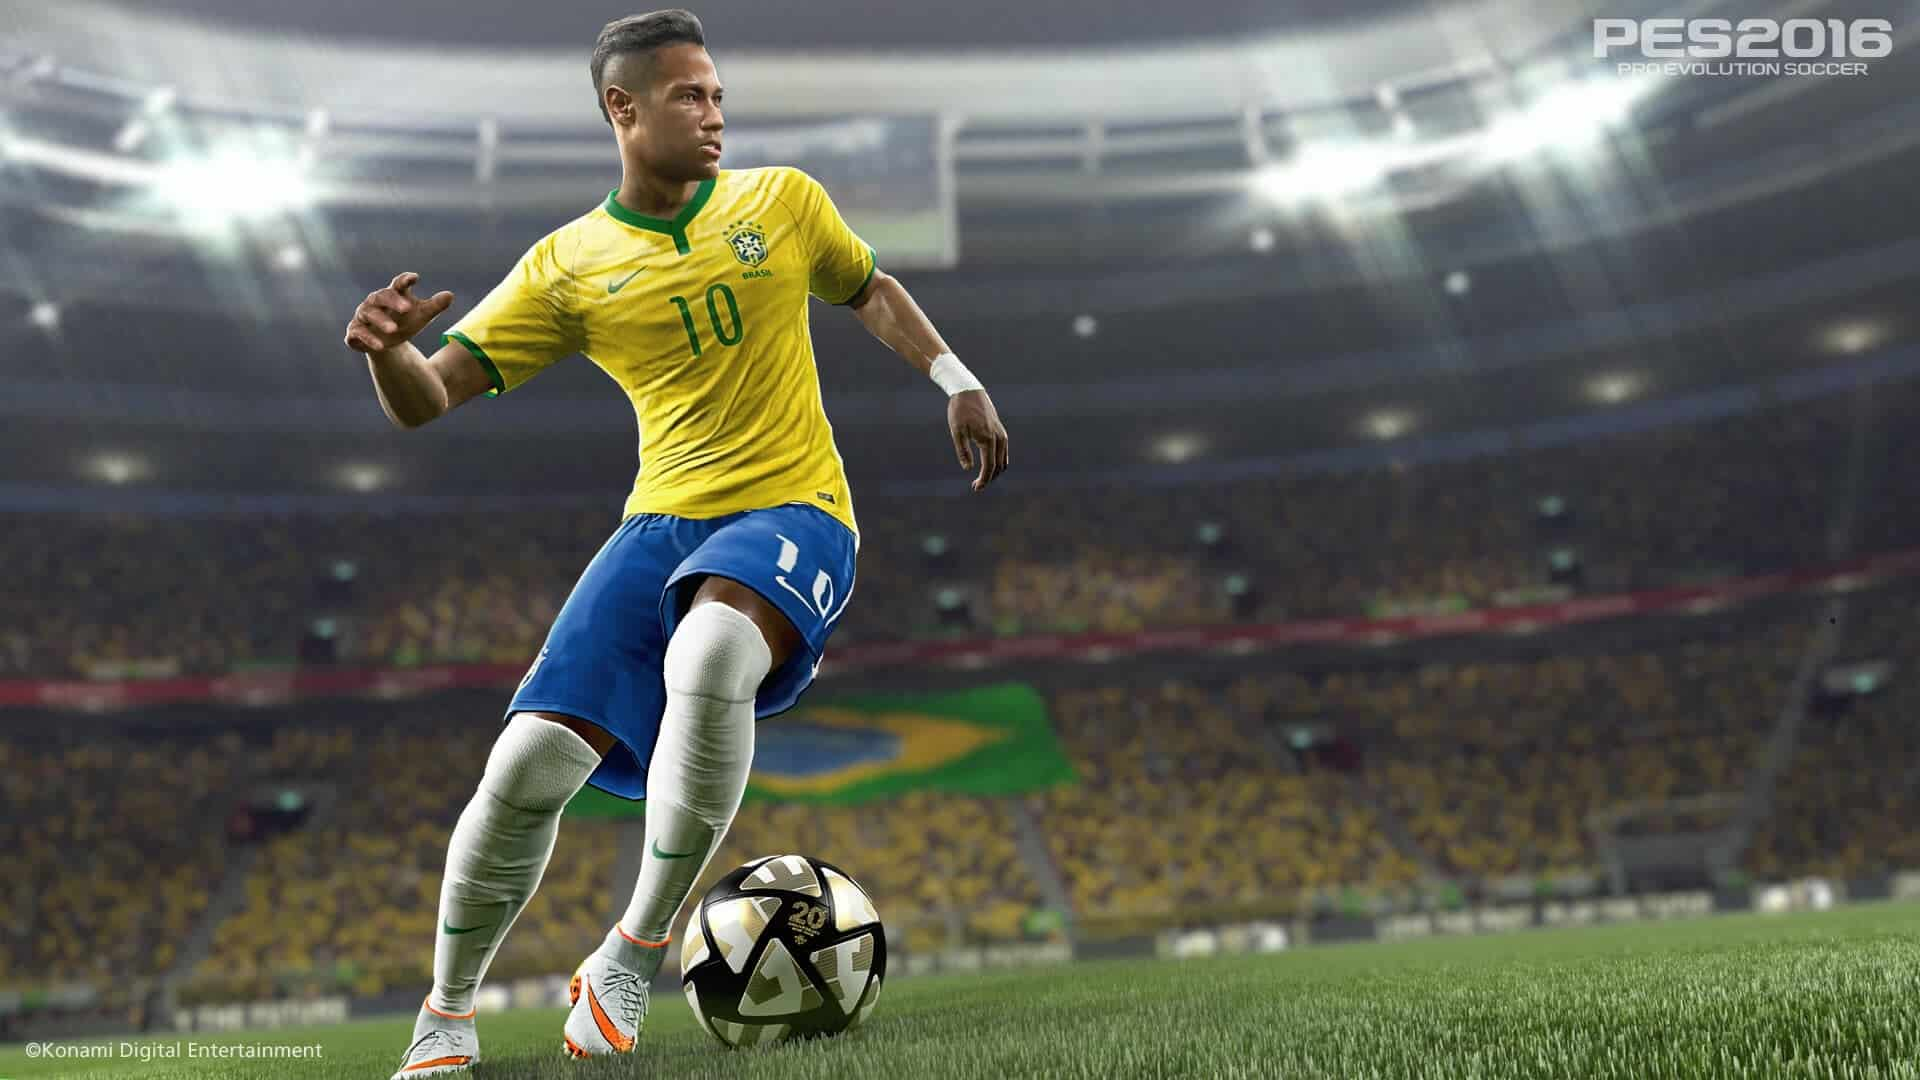 Pro Evolution Soccer 2016 Telecharger PC gratuit